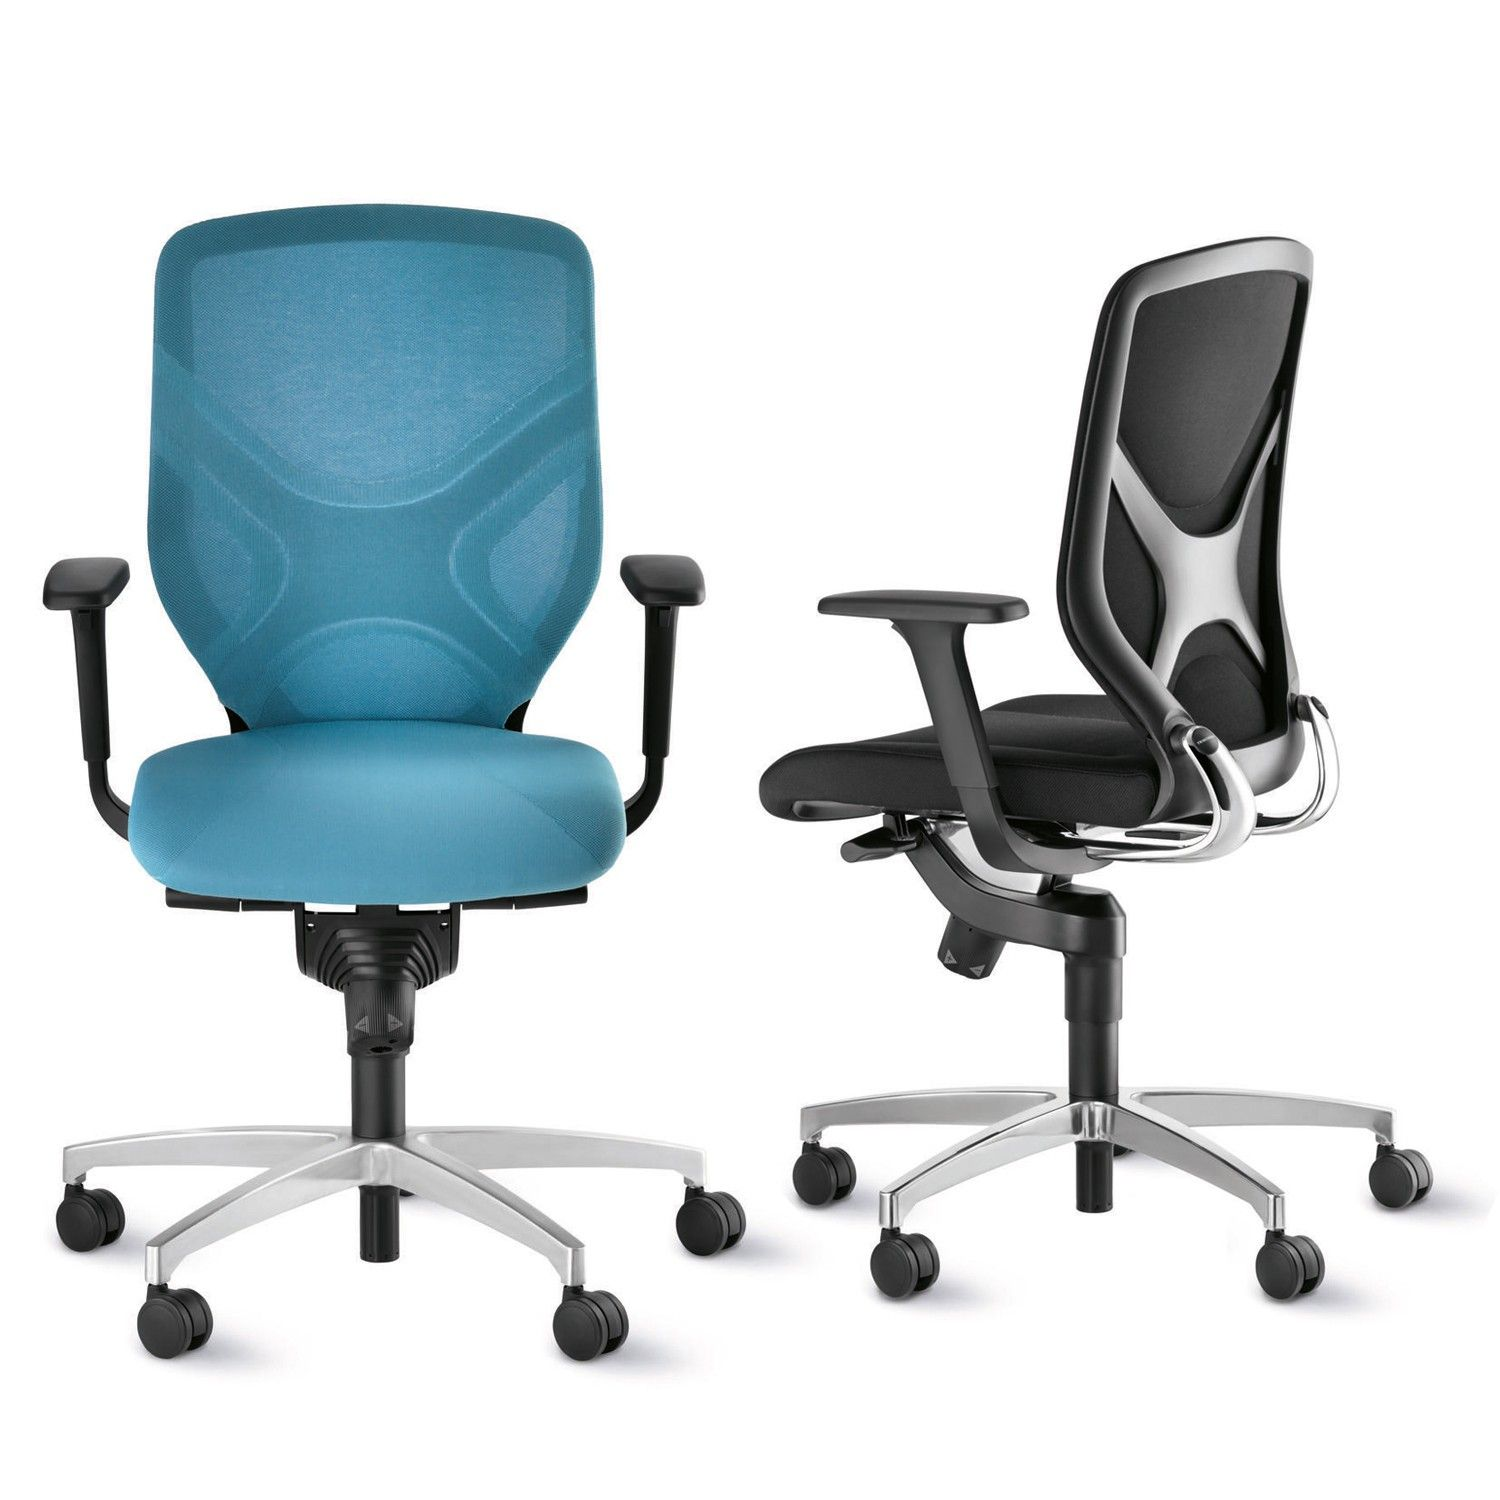 posture study chair playroom table and chairs the in office was born following a pioneering